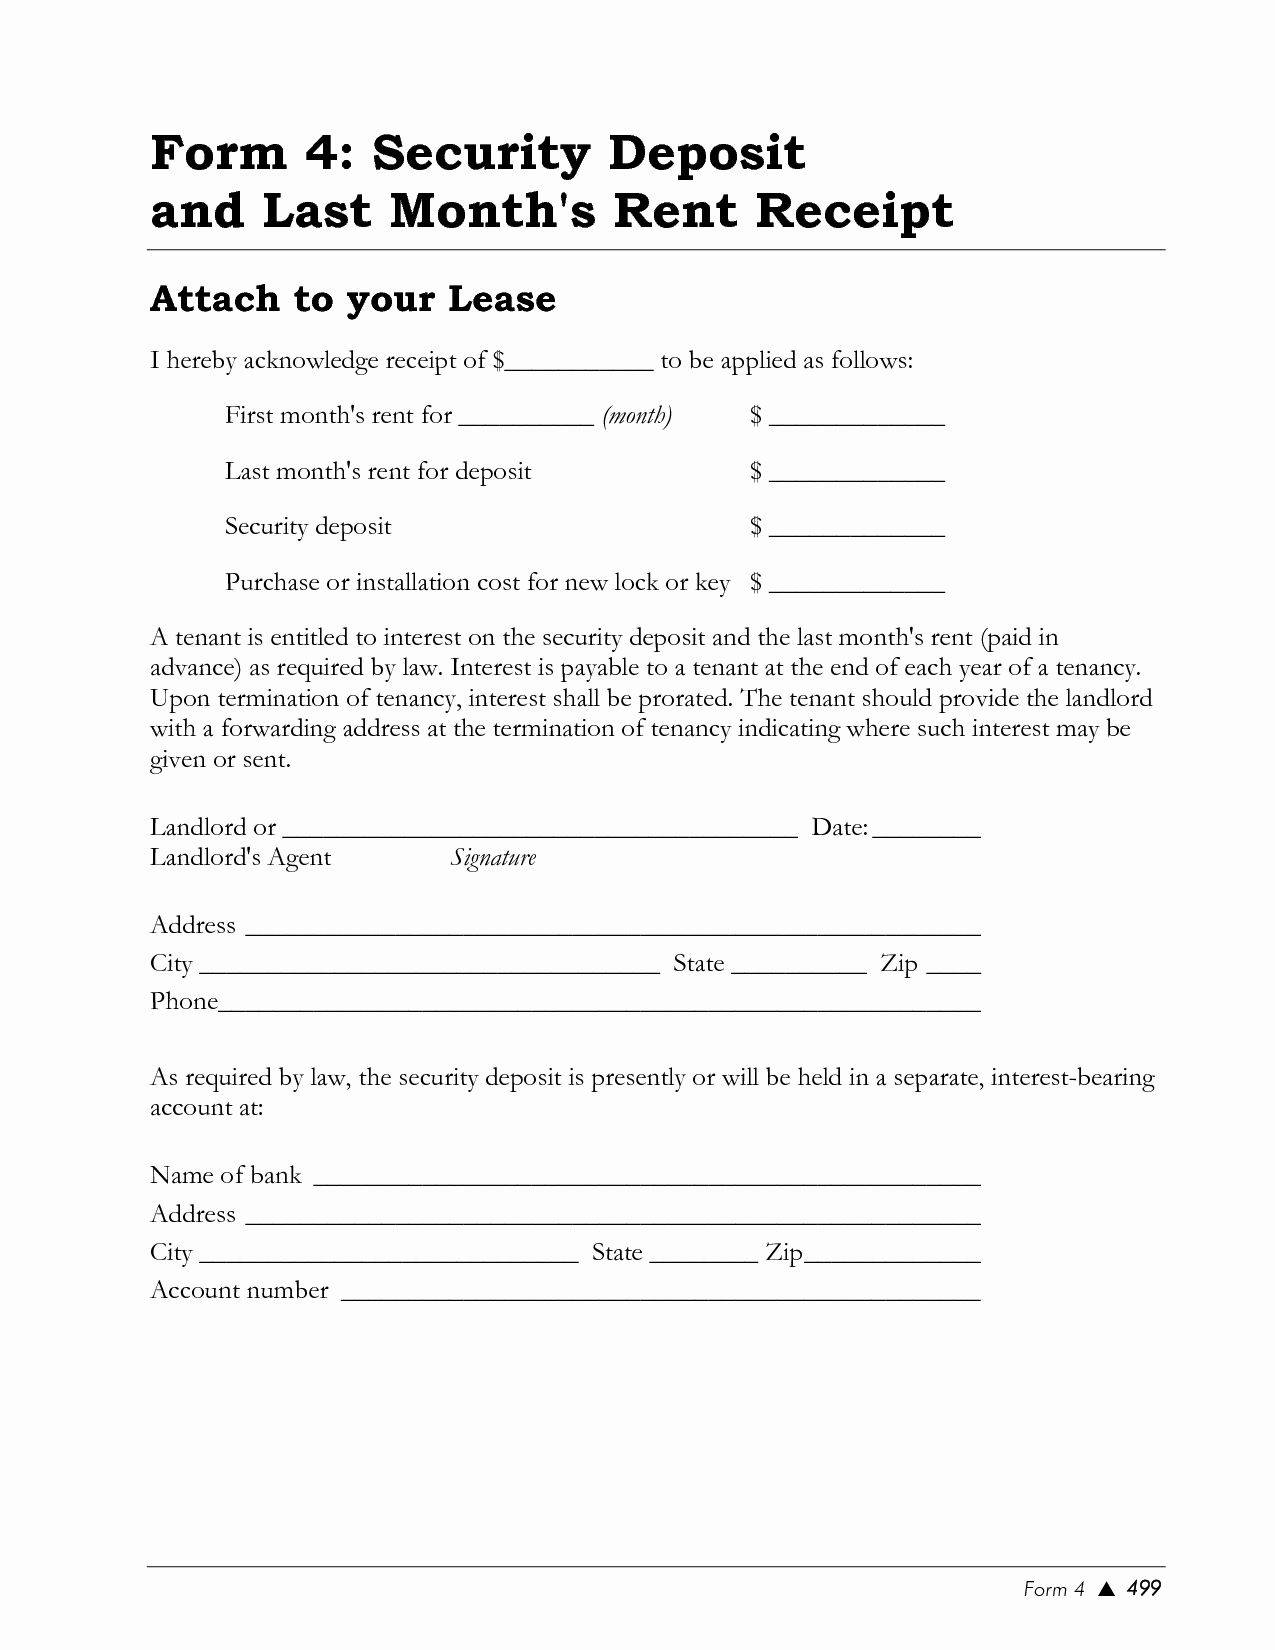 Rent Deposit Receipt Template Elegant Best S Of Rental Deposit Receipt Template Rent Receipt Template Employee Handbook Template Receipt